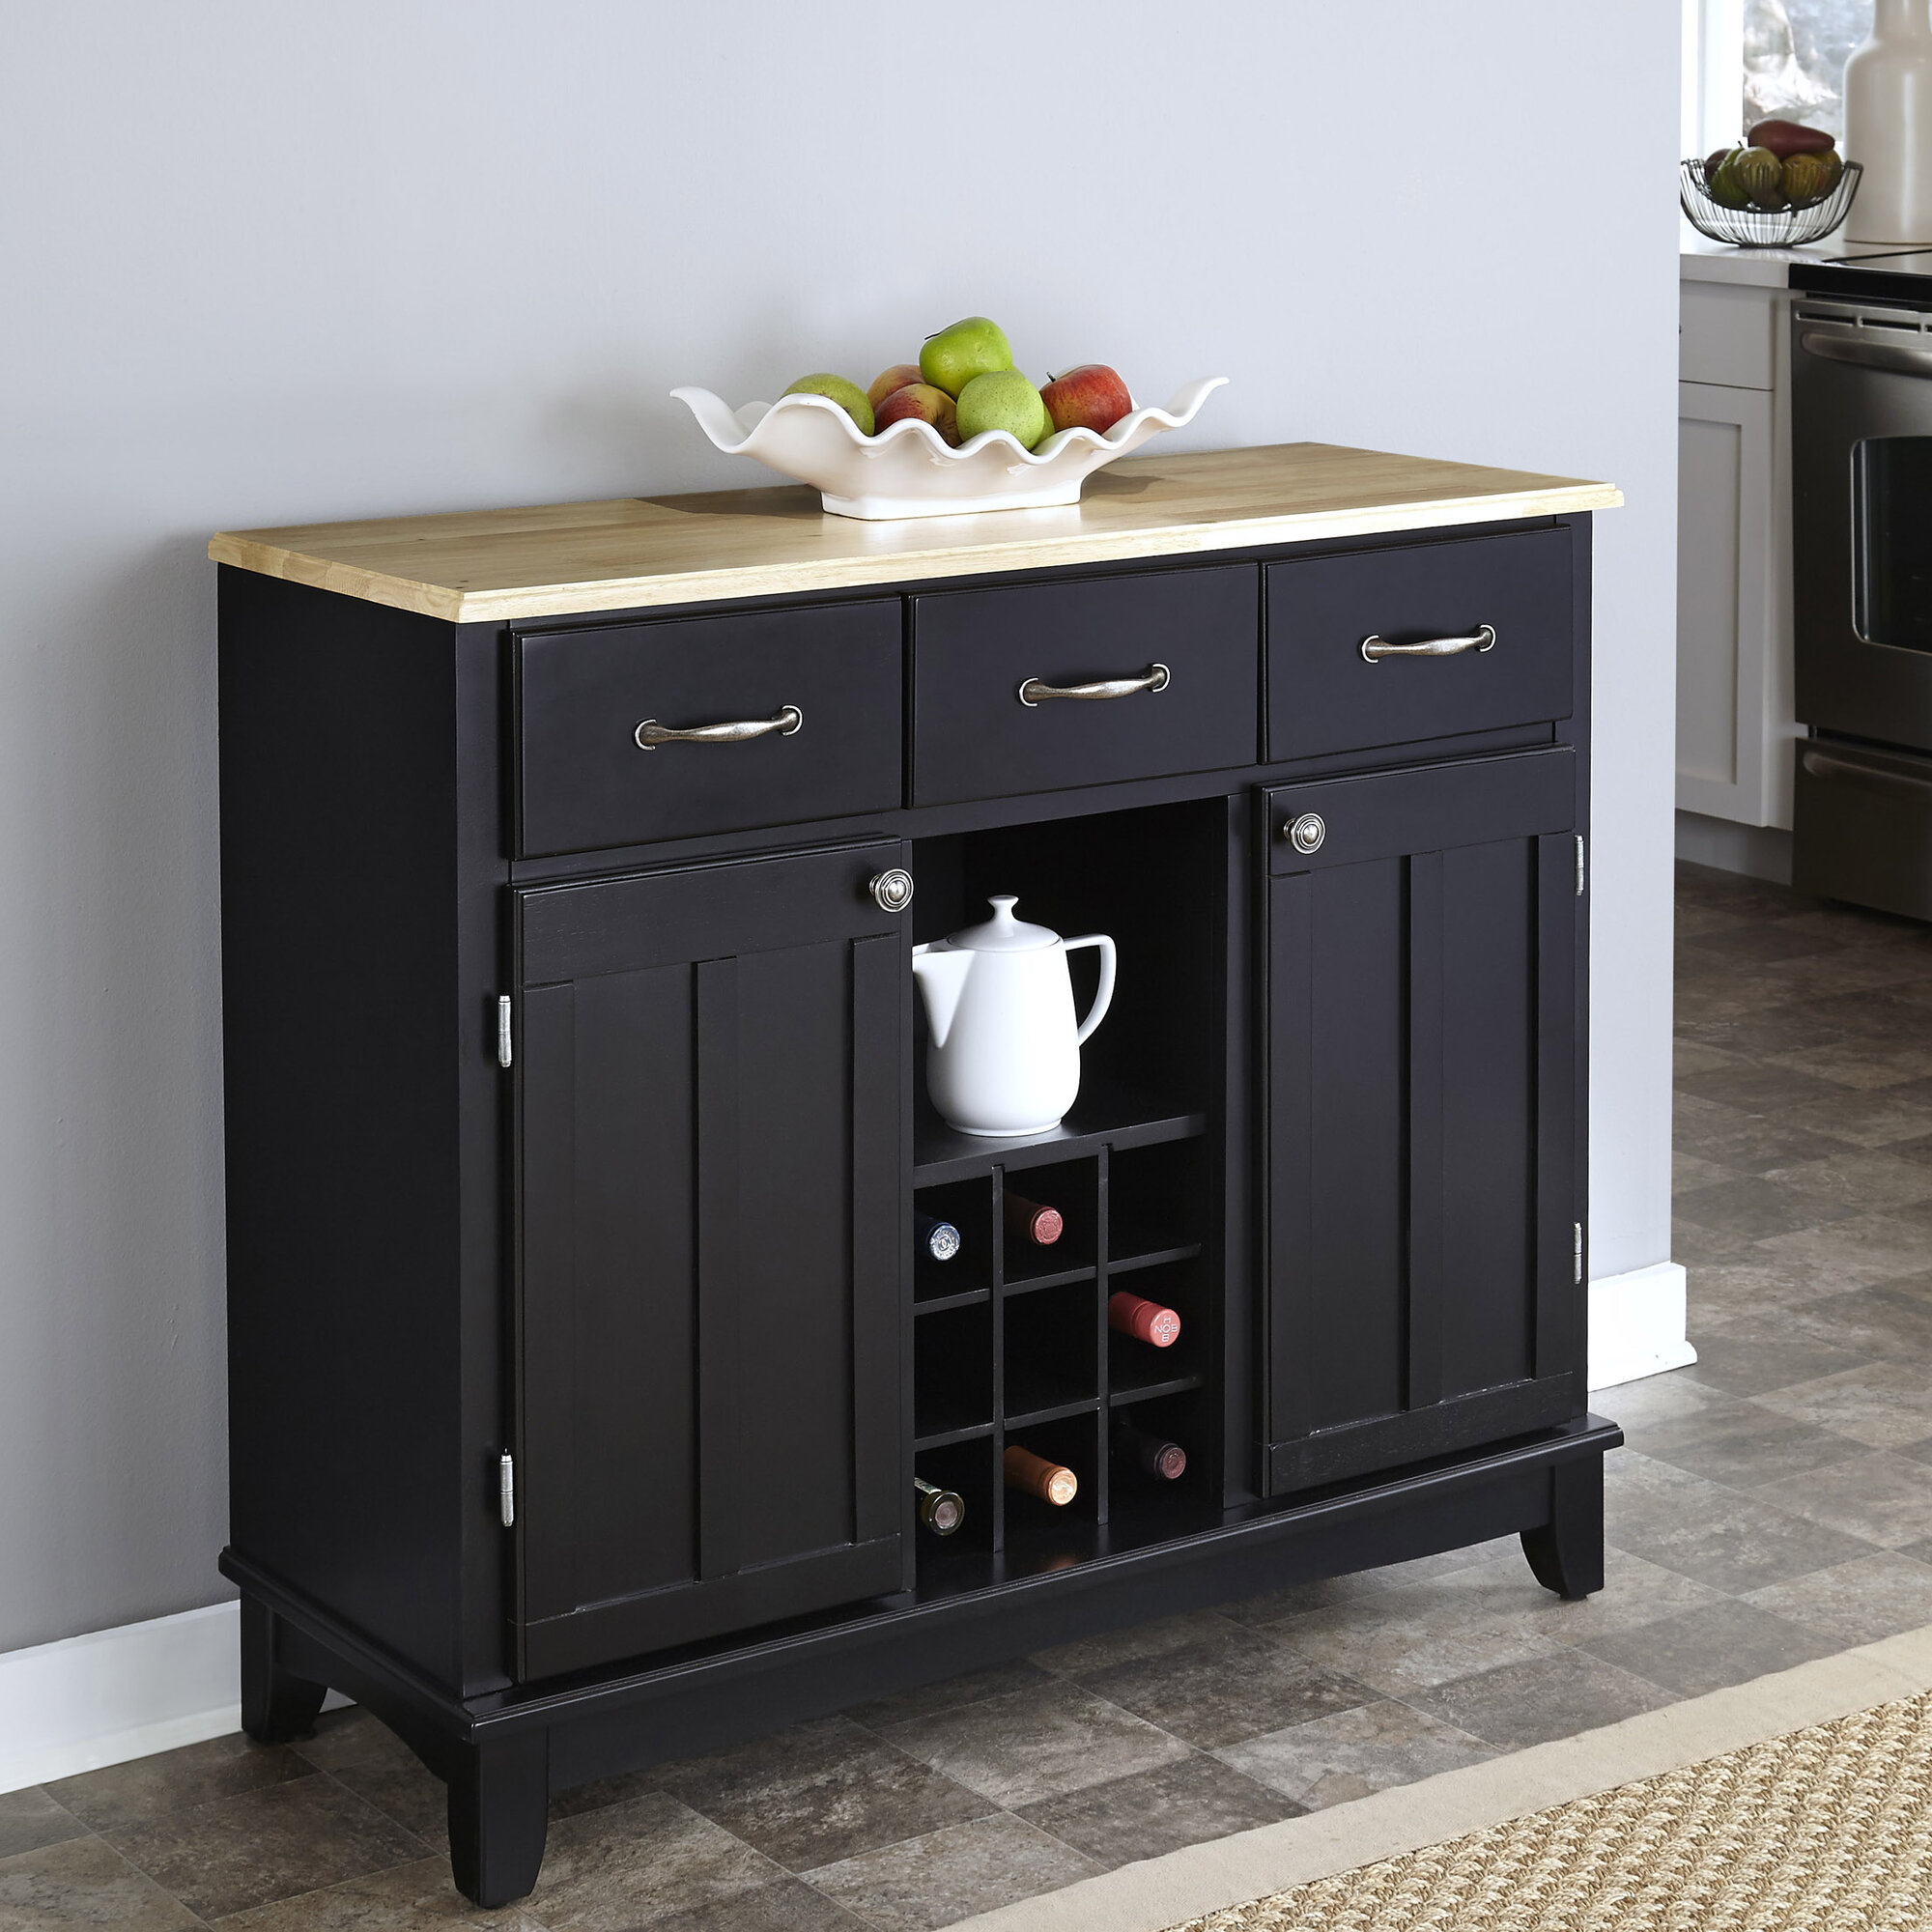 details about sideboard buffet server dining room cabinet wine rack